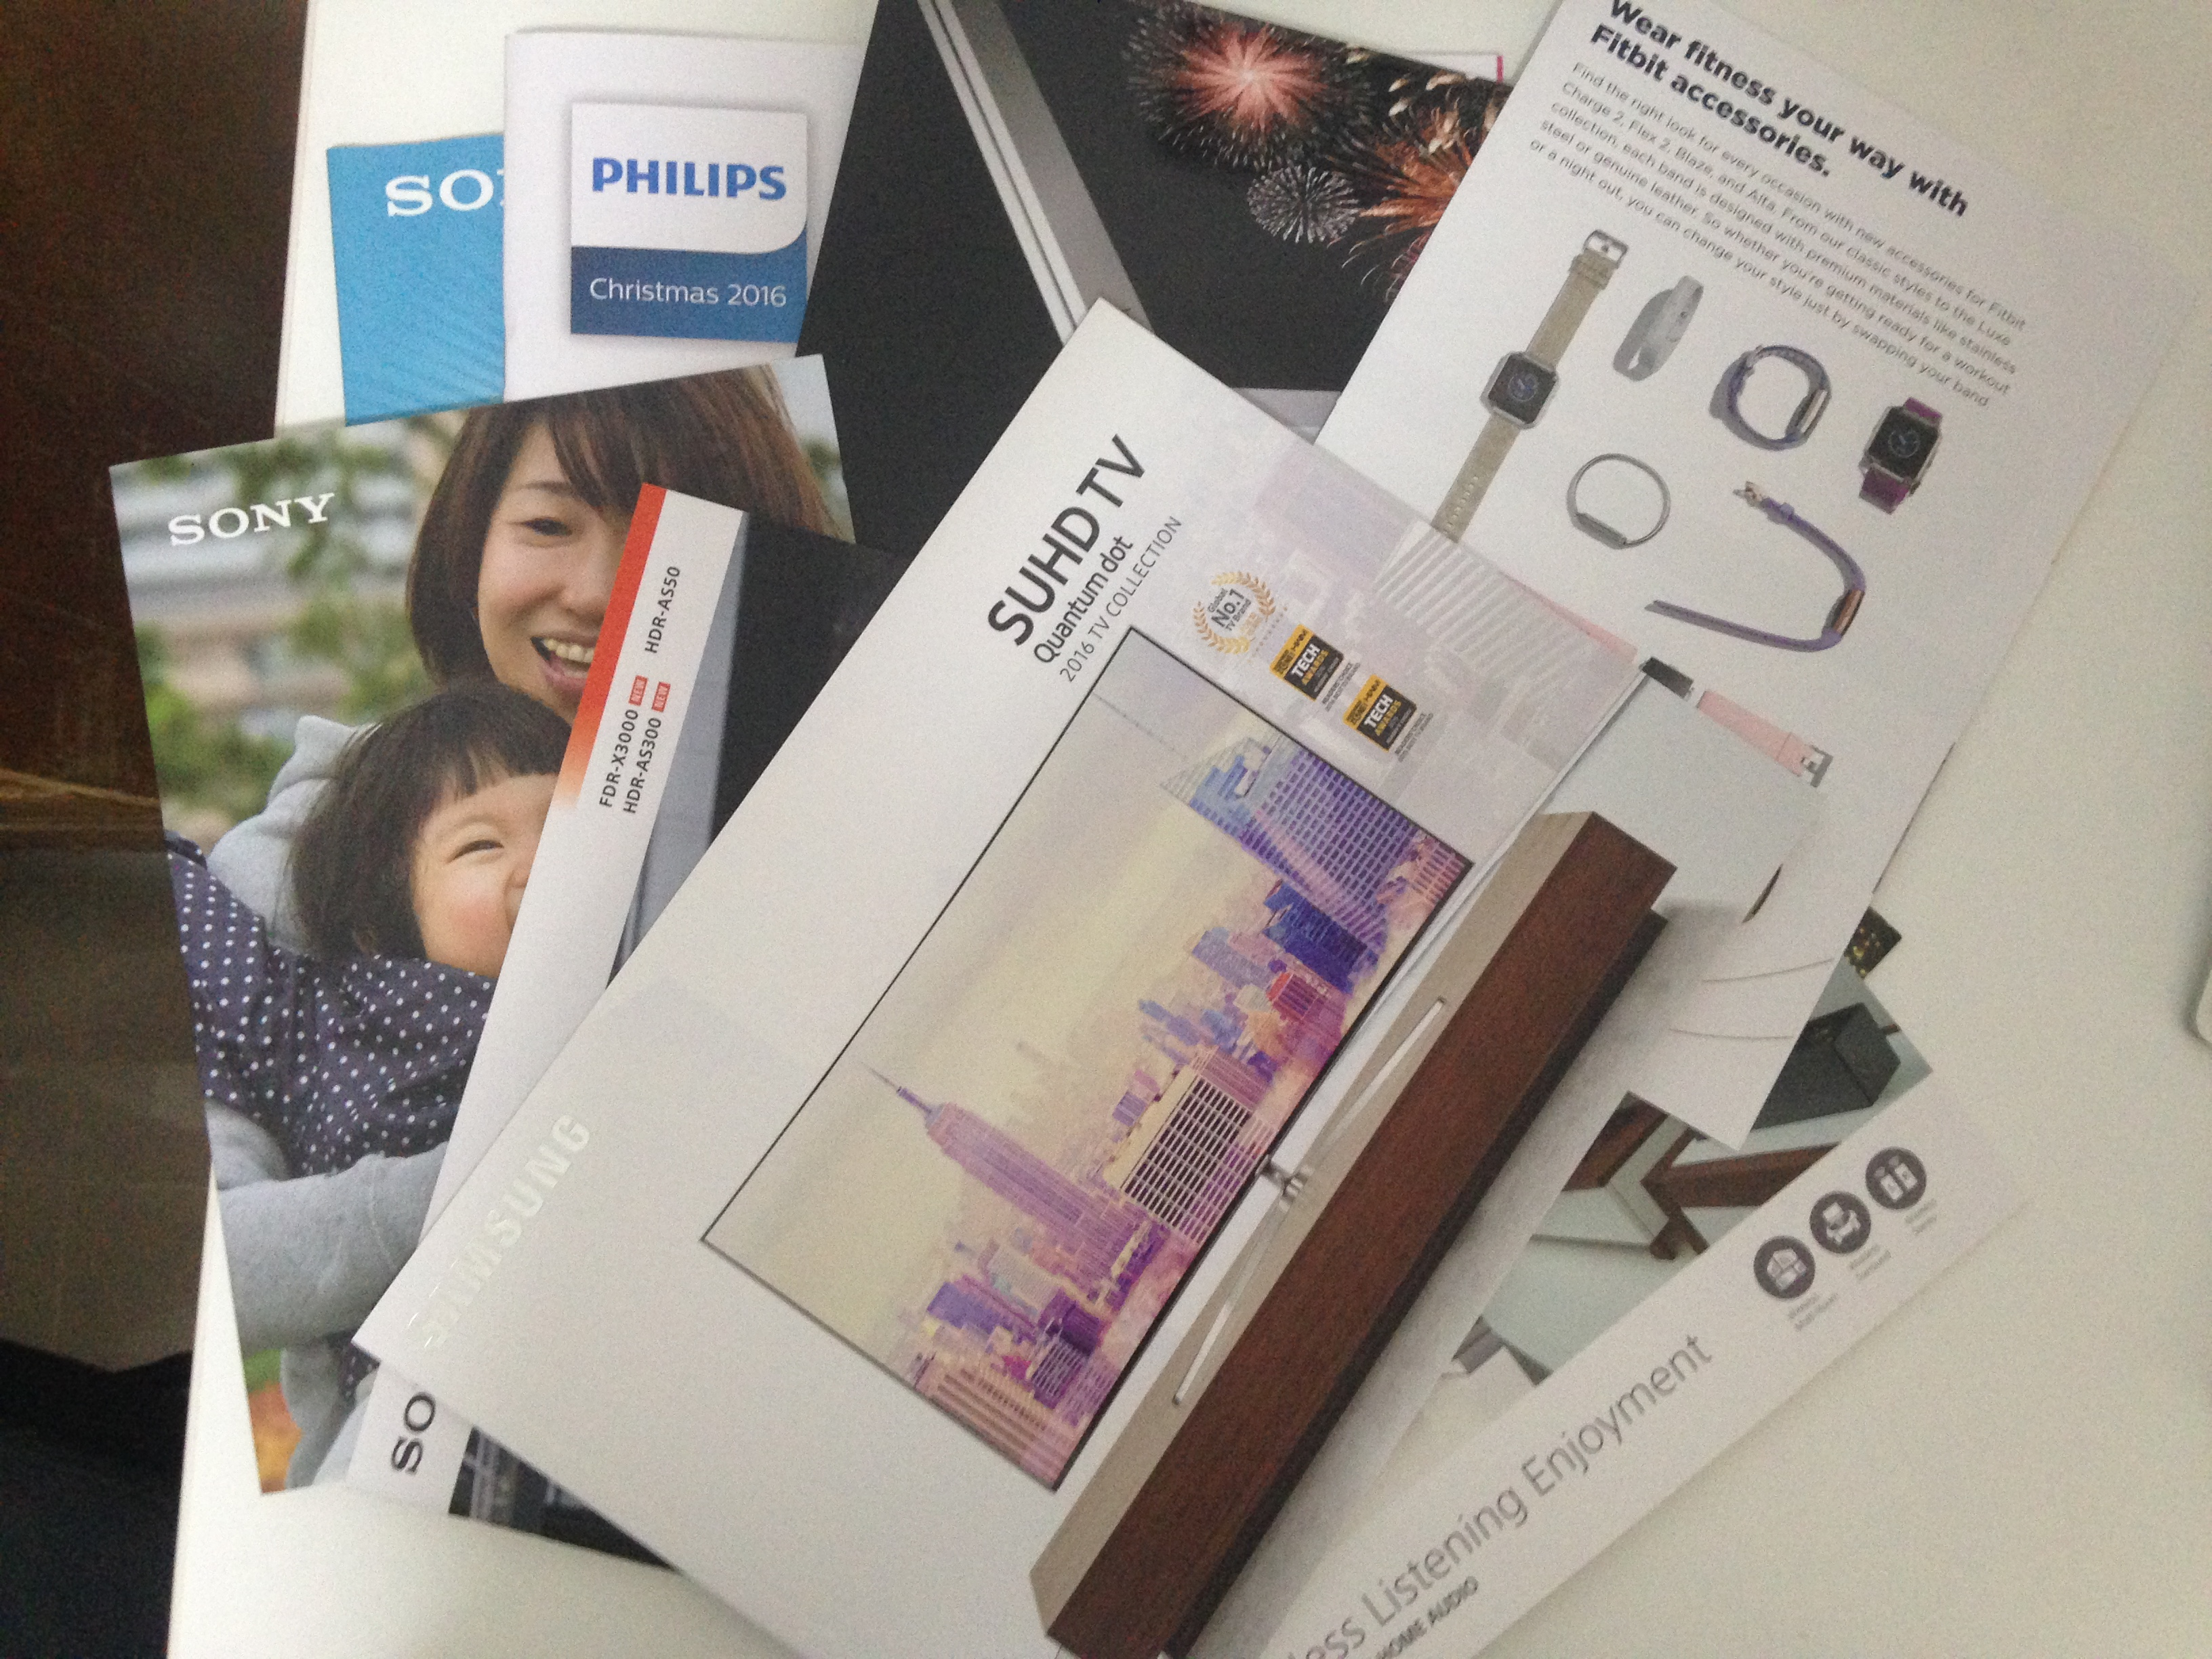 product-design-the-design-sketchbook-inspiration-catalogue-of-products